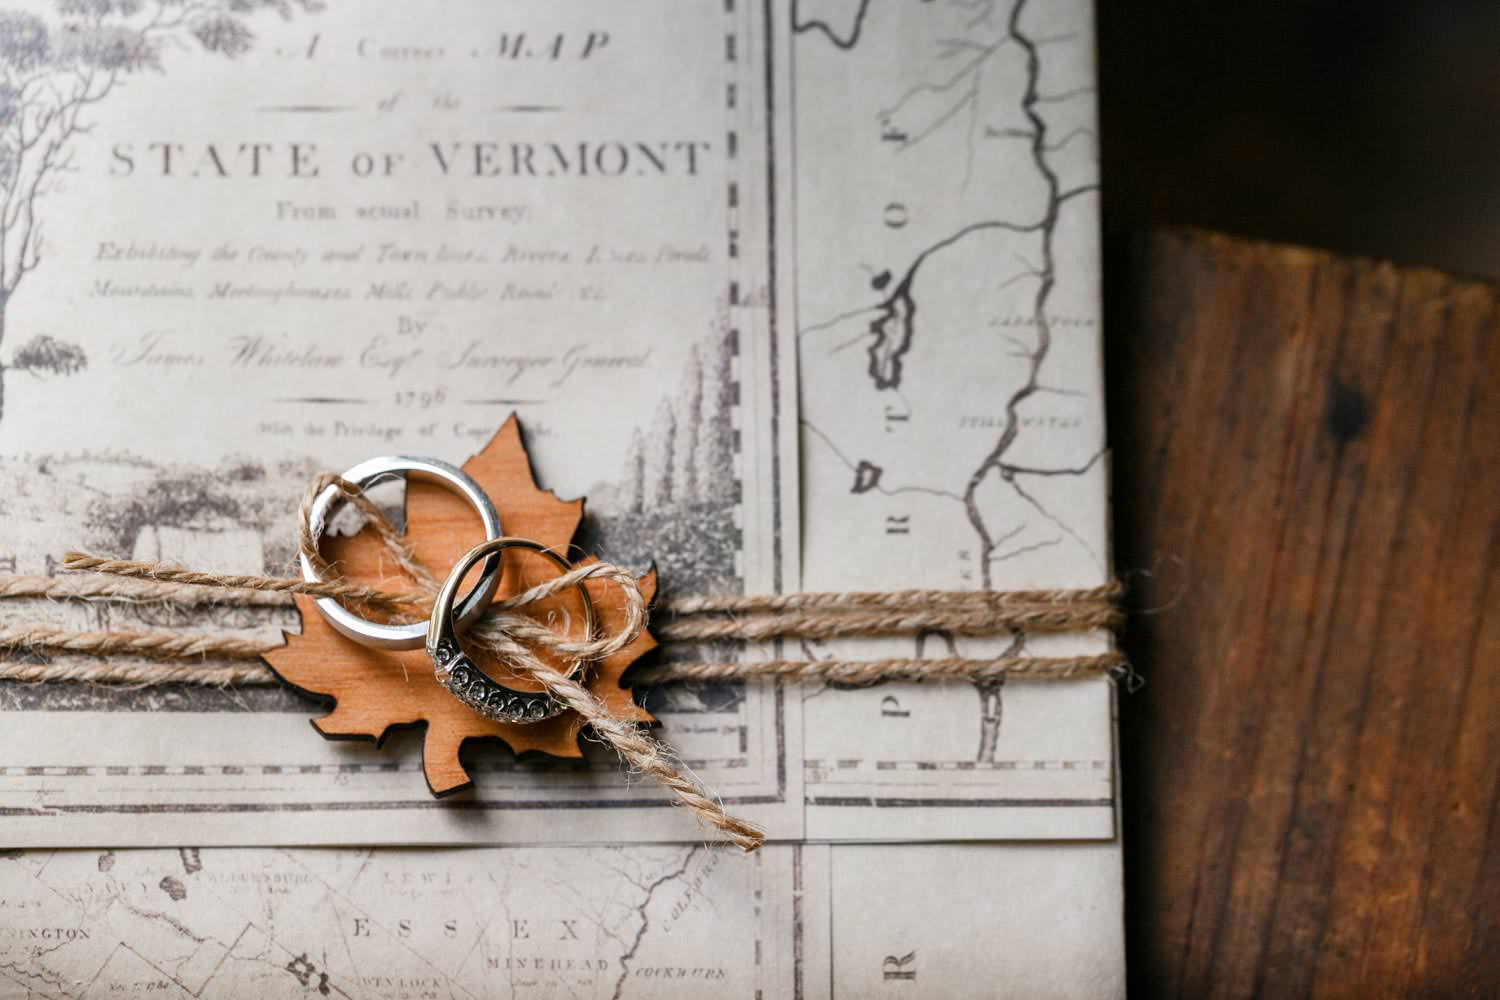 vermont wedding photographer composes riverside farm couple's ring on wedding invite